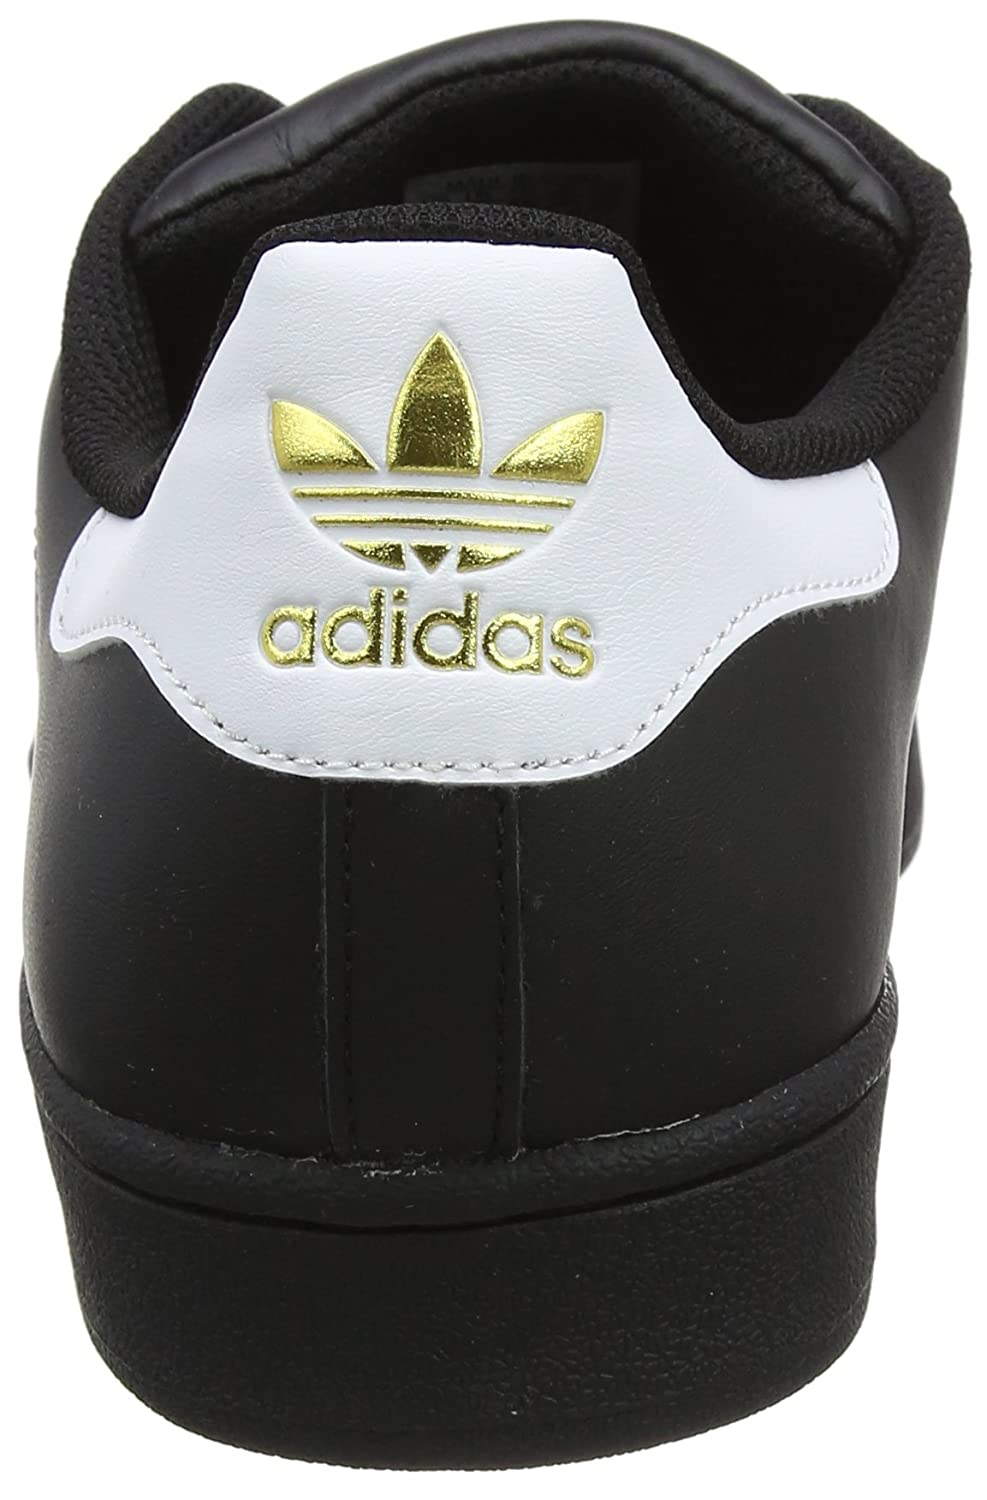 Originals SuperstarZapatillas Adidas Unisex AdultoNegrocore v80mNnw